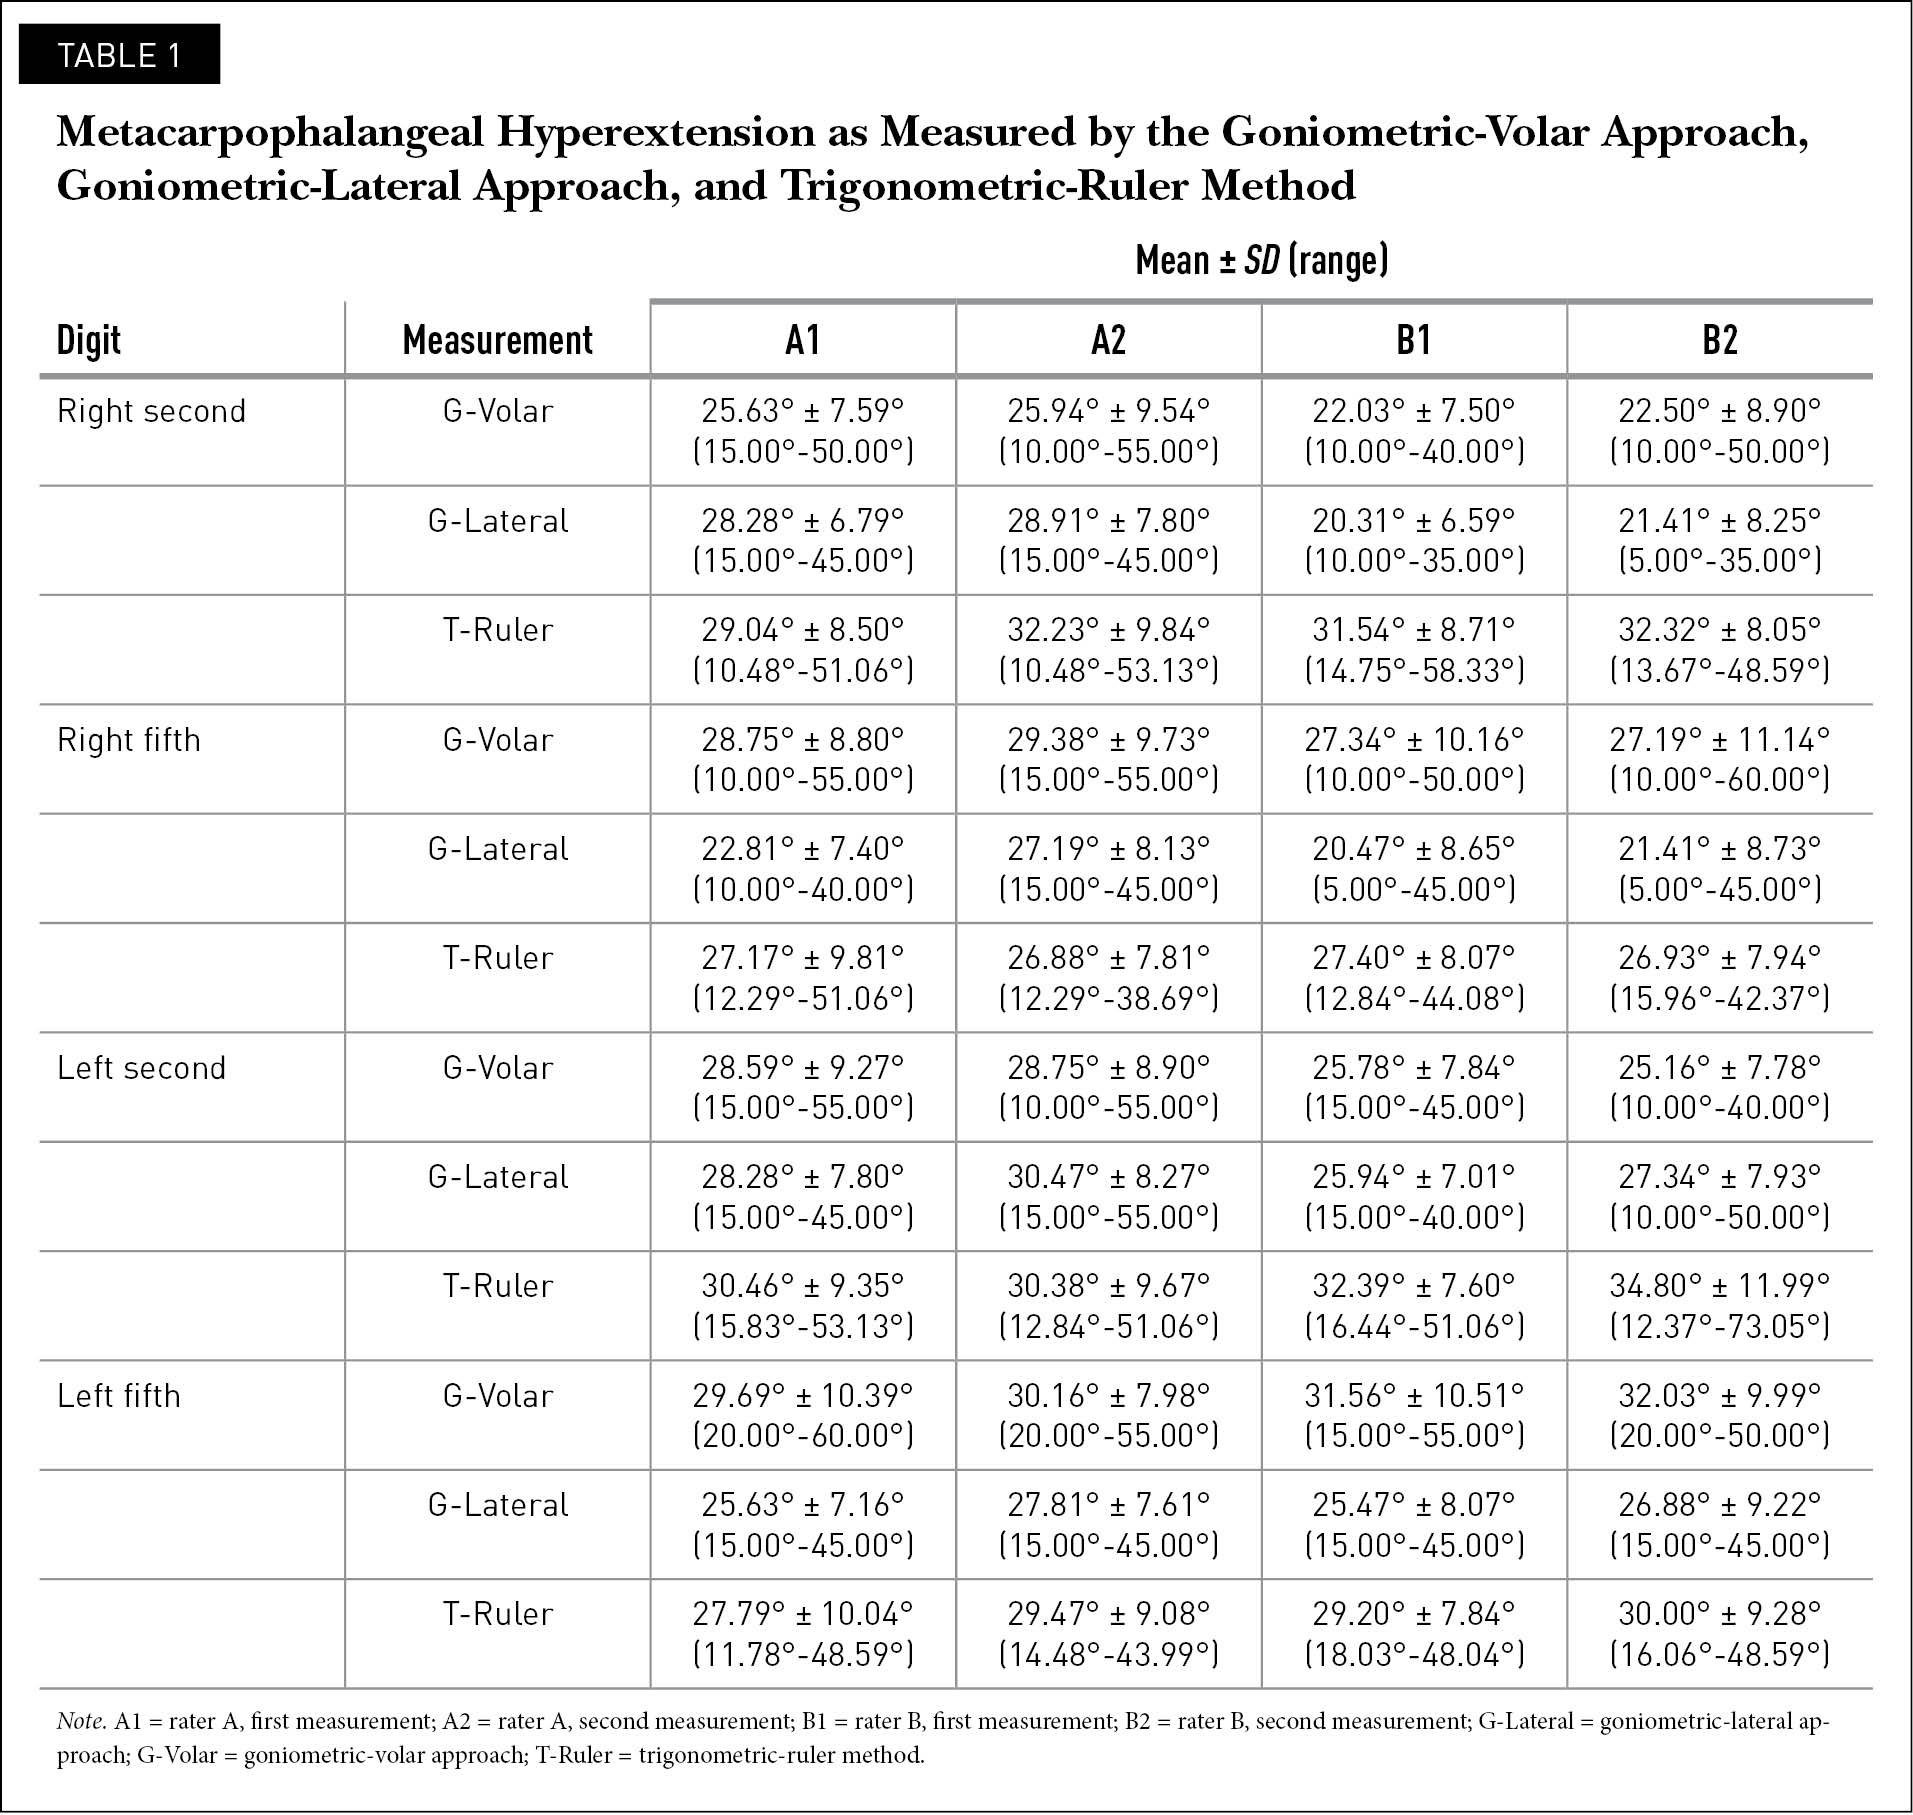 Metacarpophalangeal Hyperextension as Measured by the Goniometric-Volar Approach, Goniometric-Lateral Approach, and Trigonometric-Ruler Method